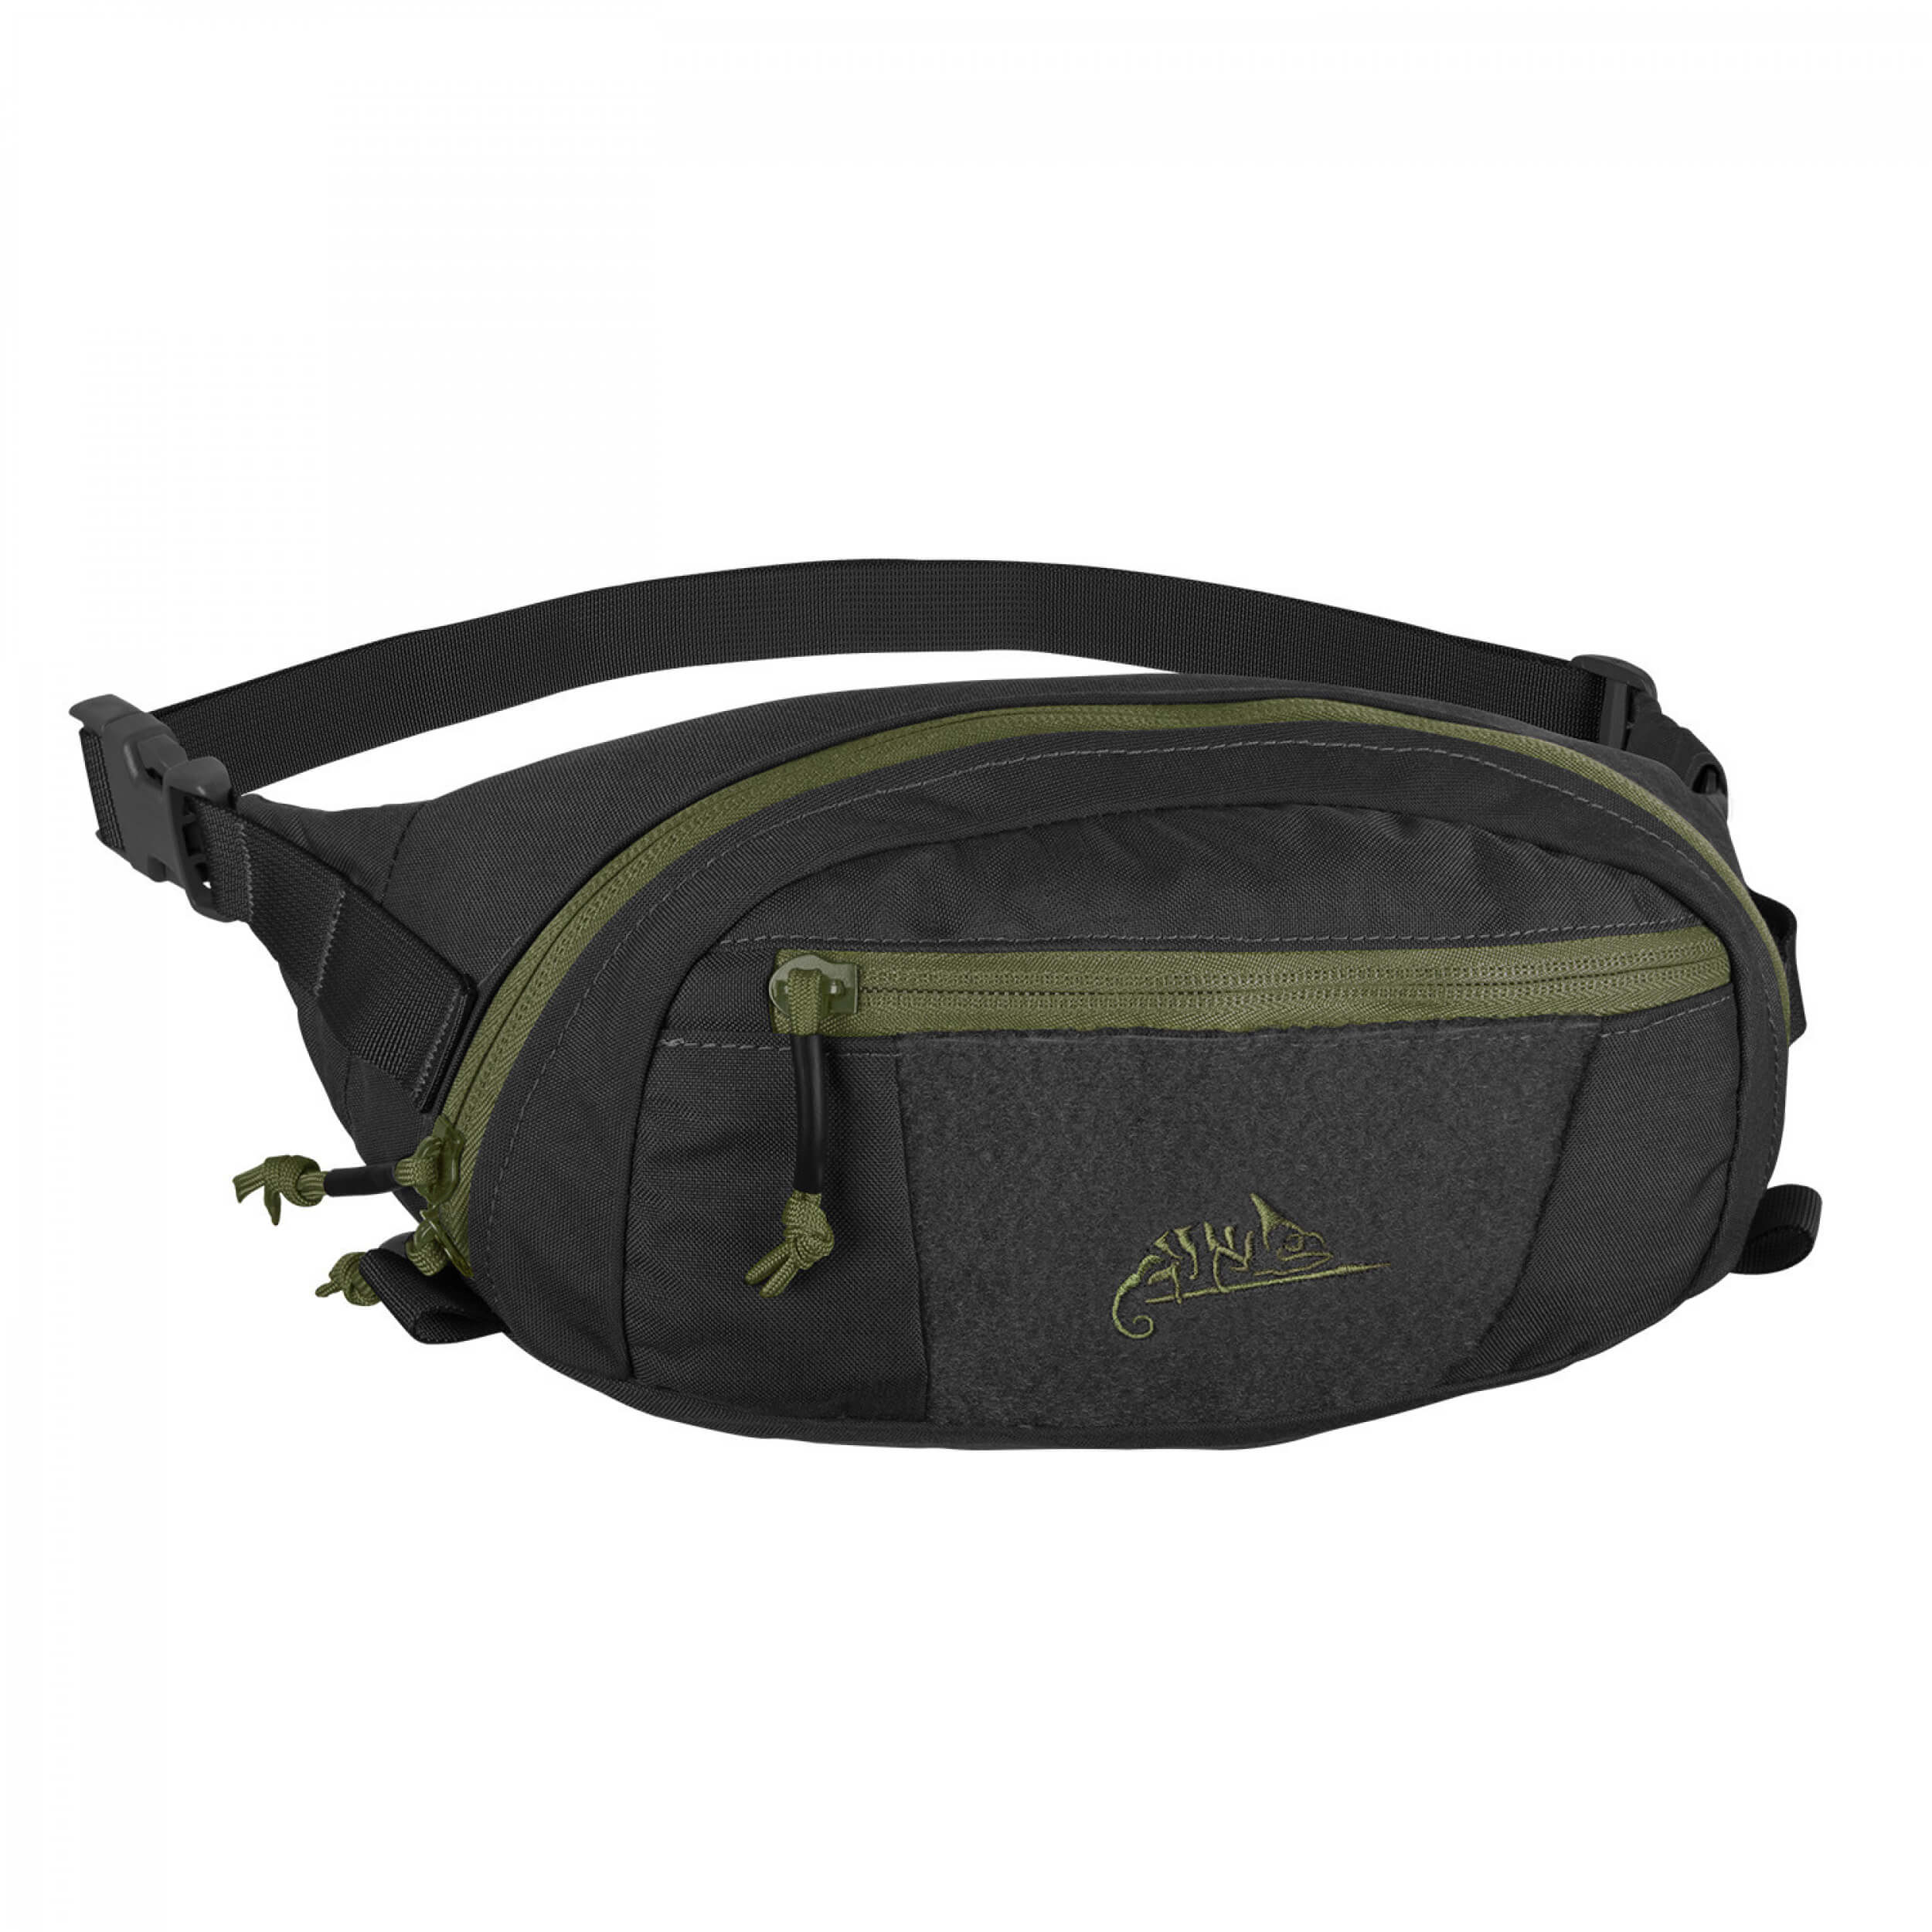 Helikon-Tex Waist Pack Bandicoot Black / Olive Green A